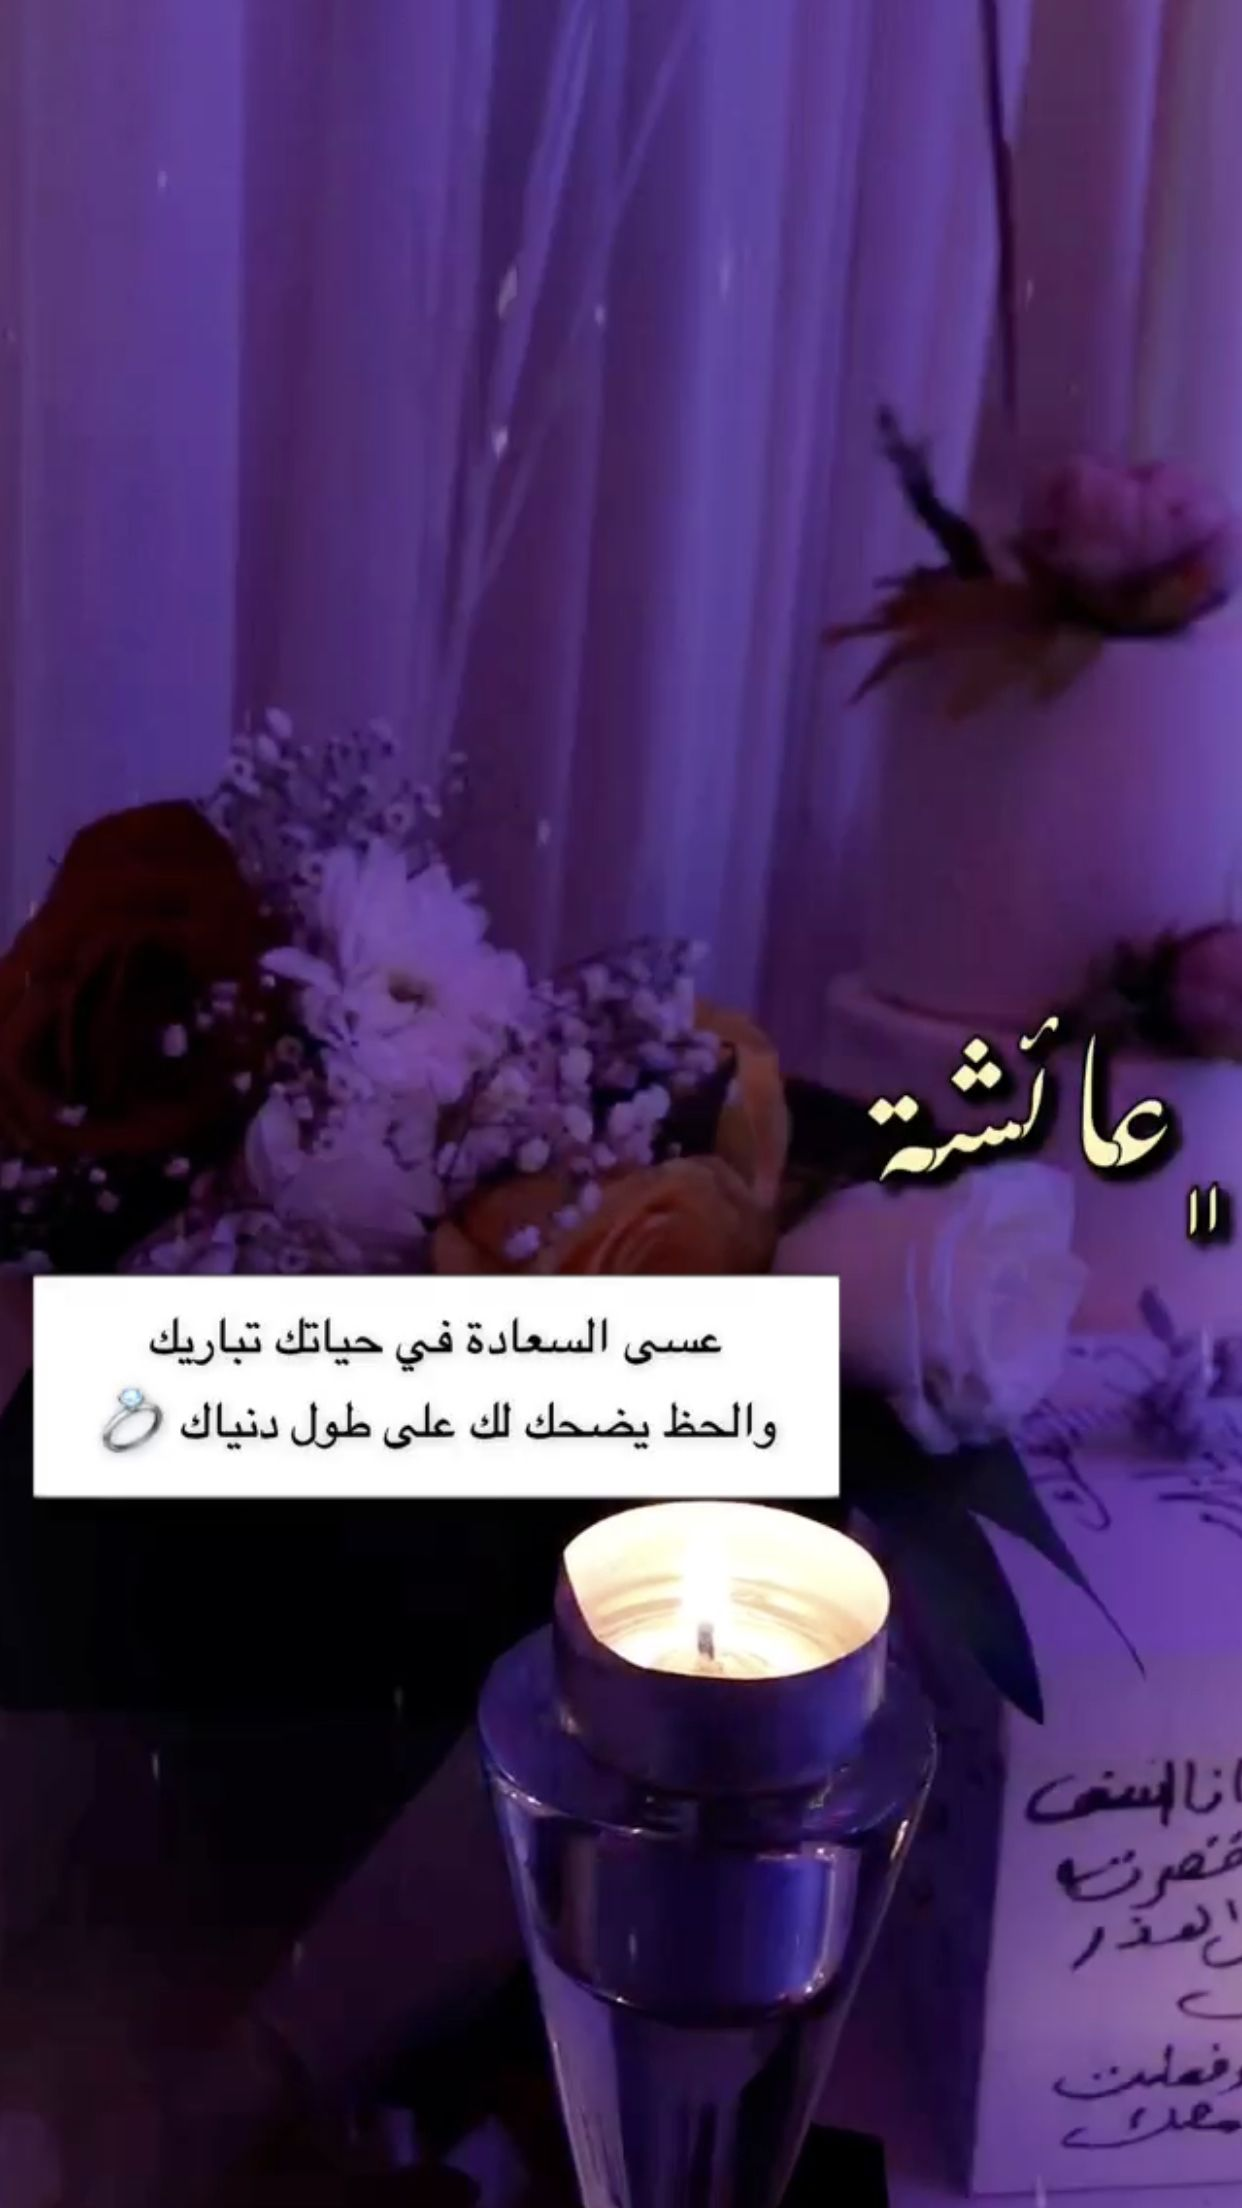 Pin By Infinite Appreciation Respec On اقتباسات Good Morning Arabic How To Better Yourself Arabic Love Quotes